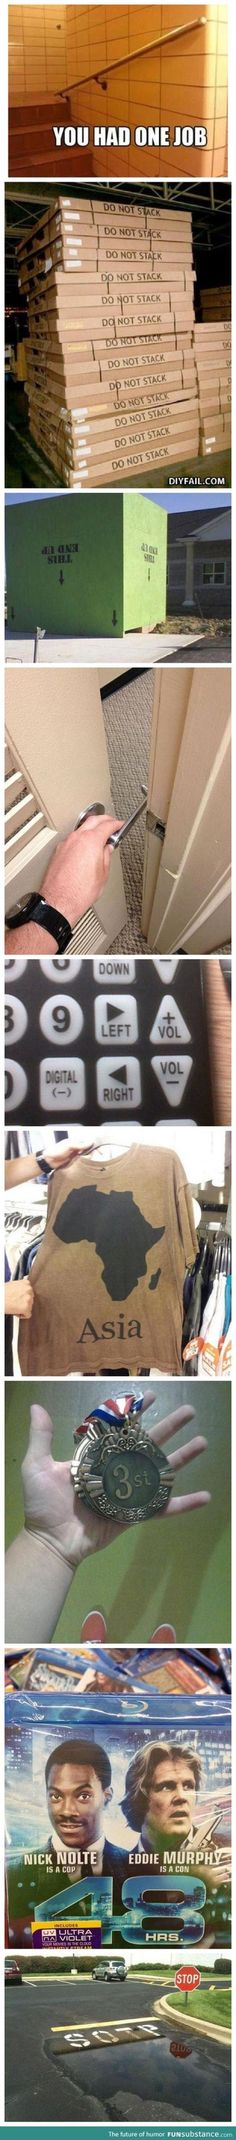 Arg! This bugs me so much, lol. My ocd kicks in a lot for most of these